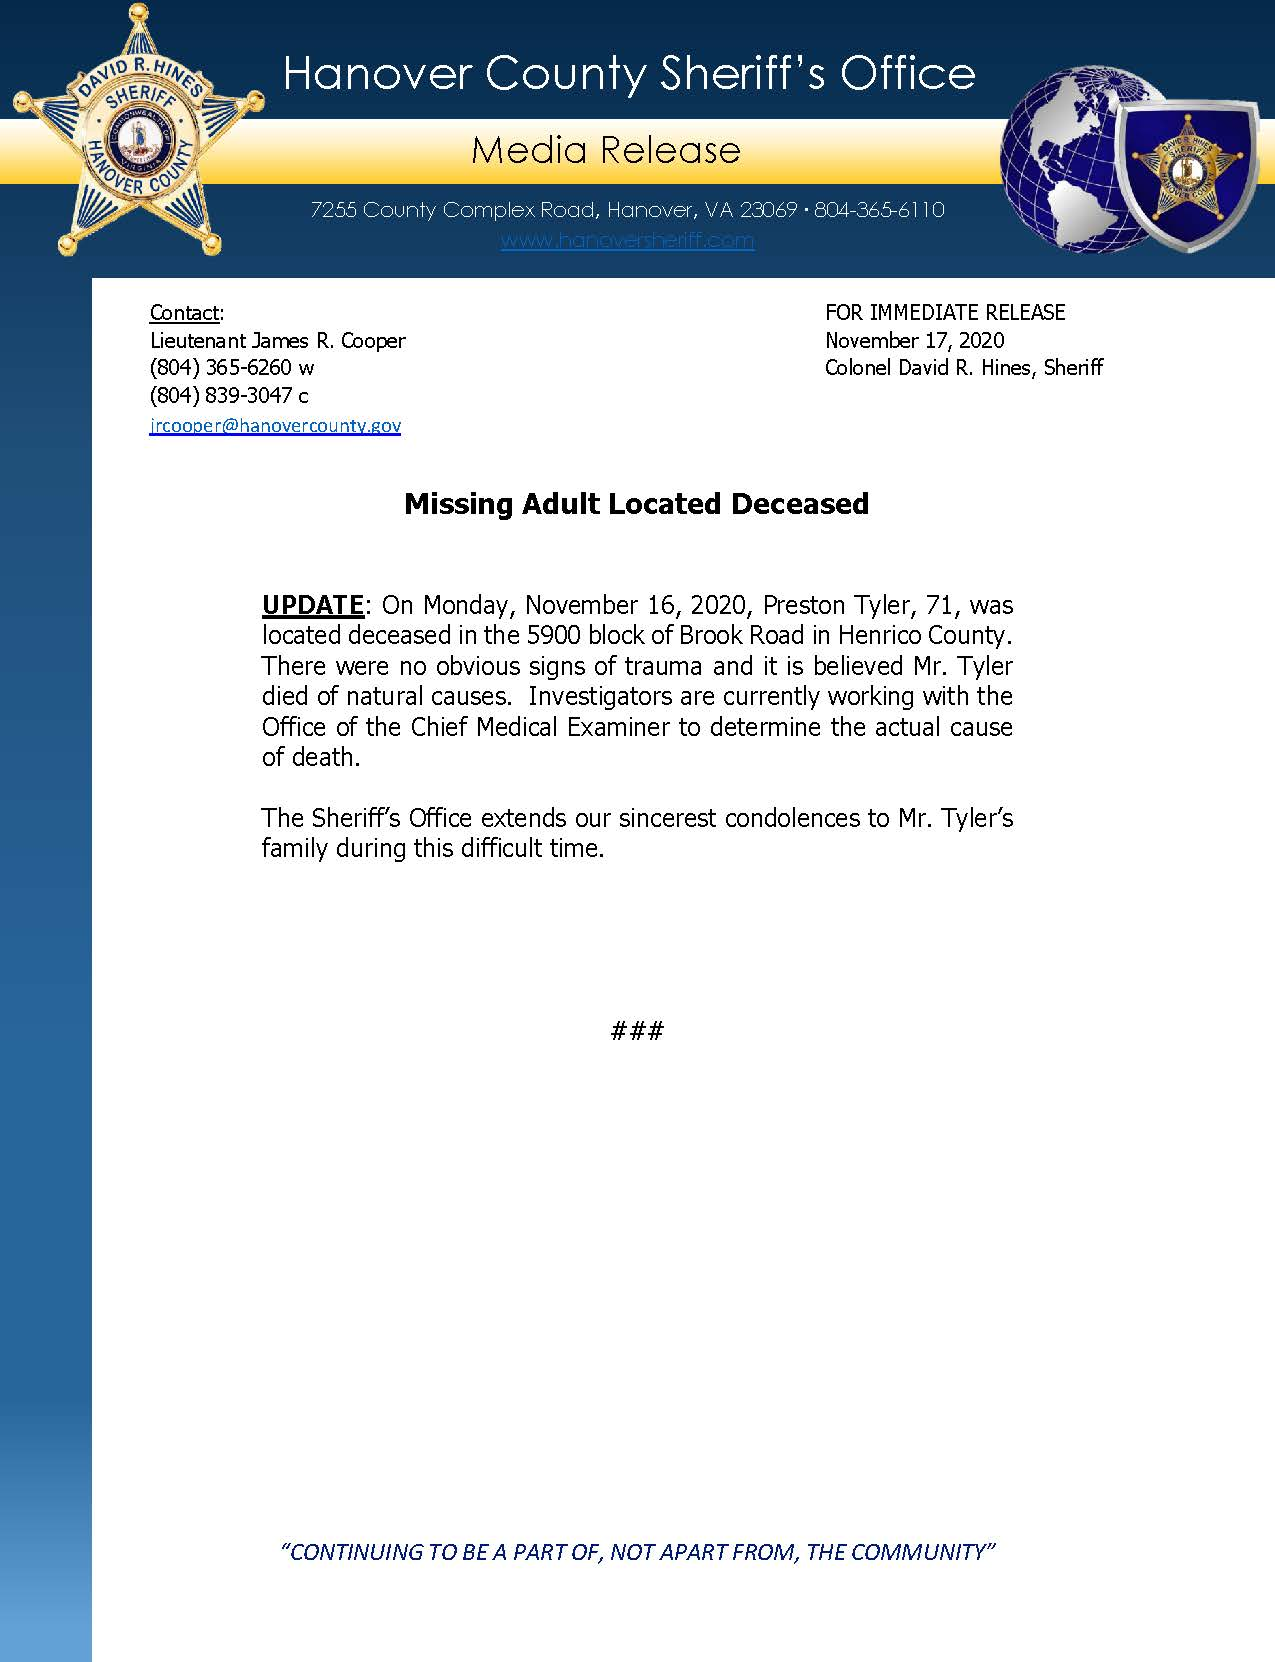 HCSO Media Release Missing Adult Located Deceased 11.17.20 Page 1